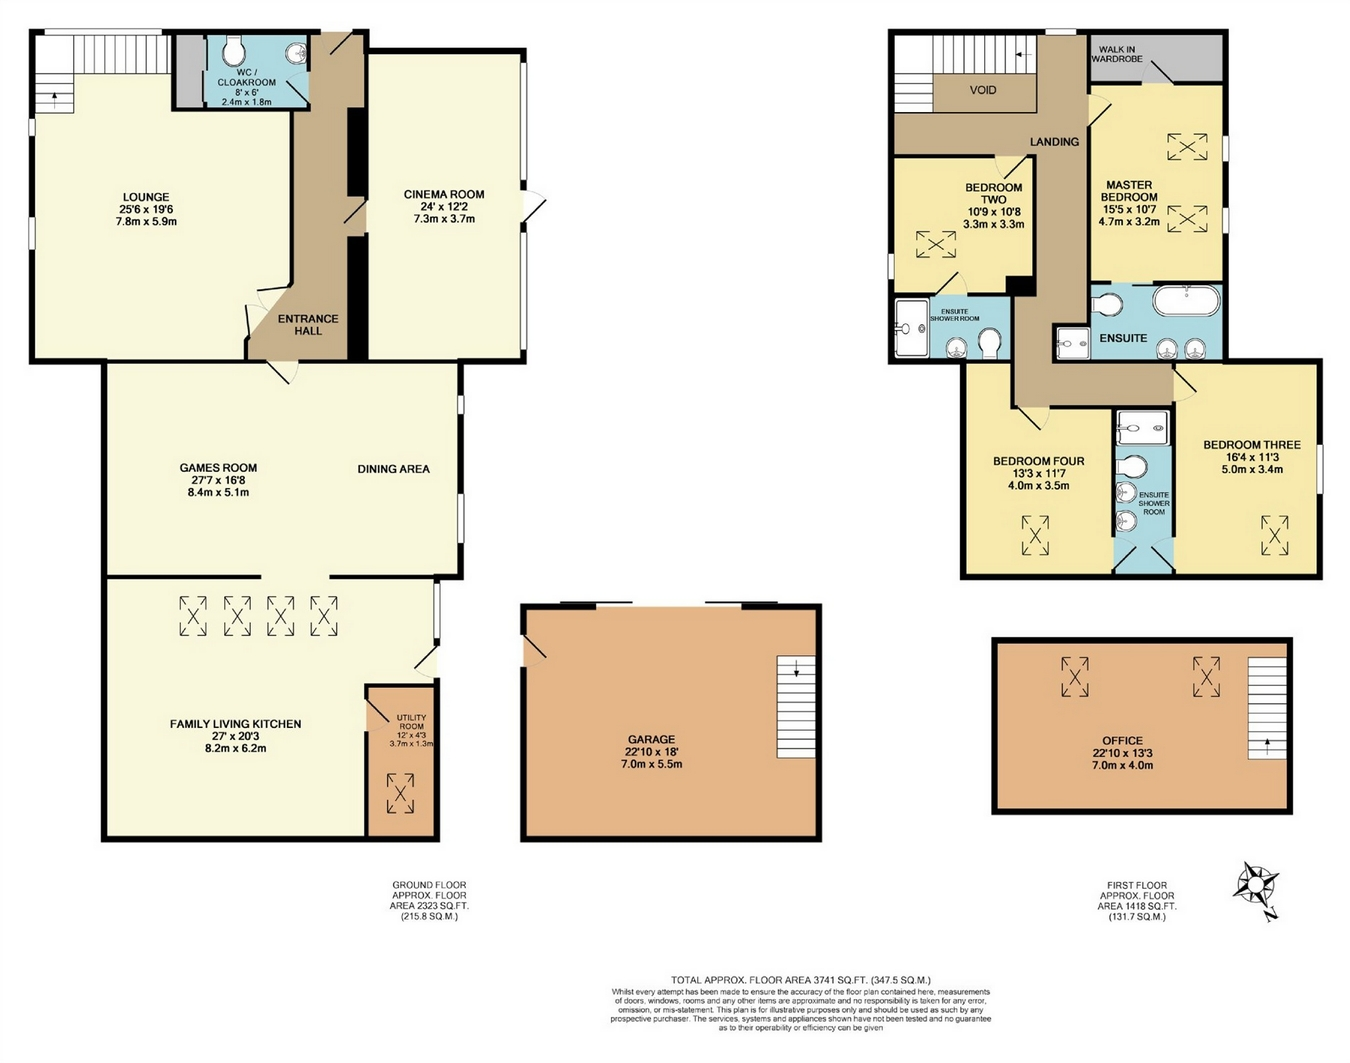 4 Bedrooms Barn conversion for sale in The Stables, Black Bull Farm, Ilkley Road, Burley In Wharfed, Ilkley, West Yorkshire LS29